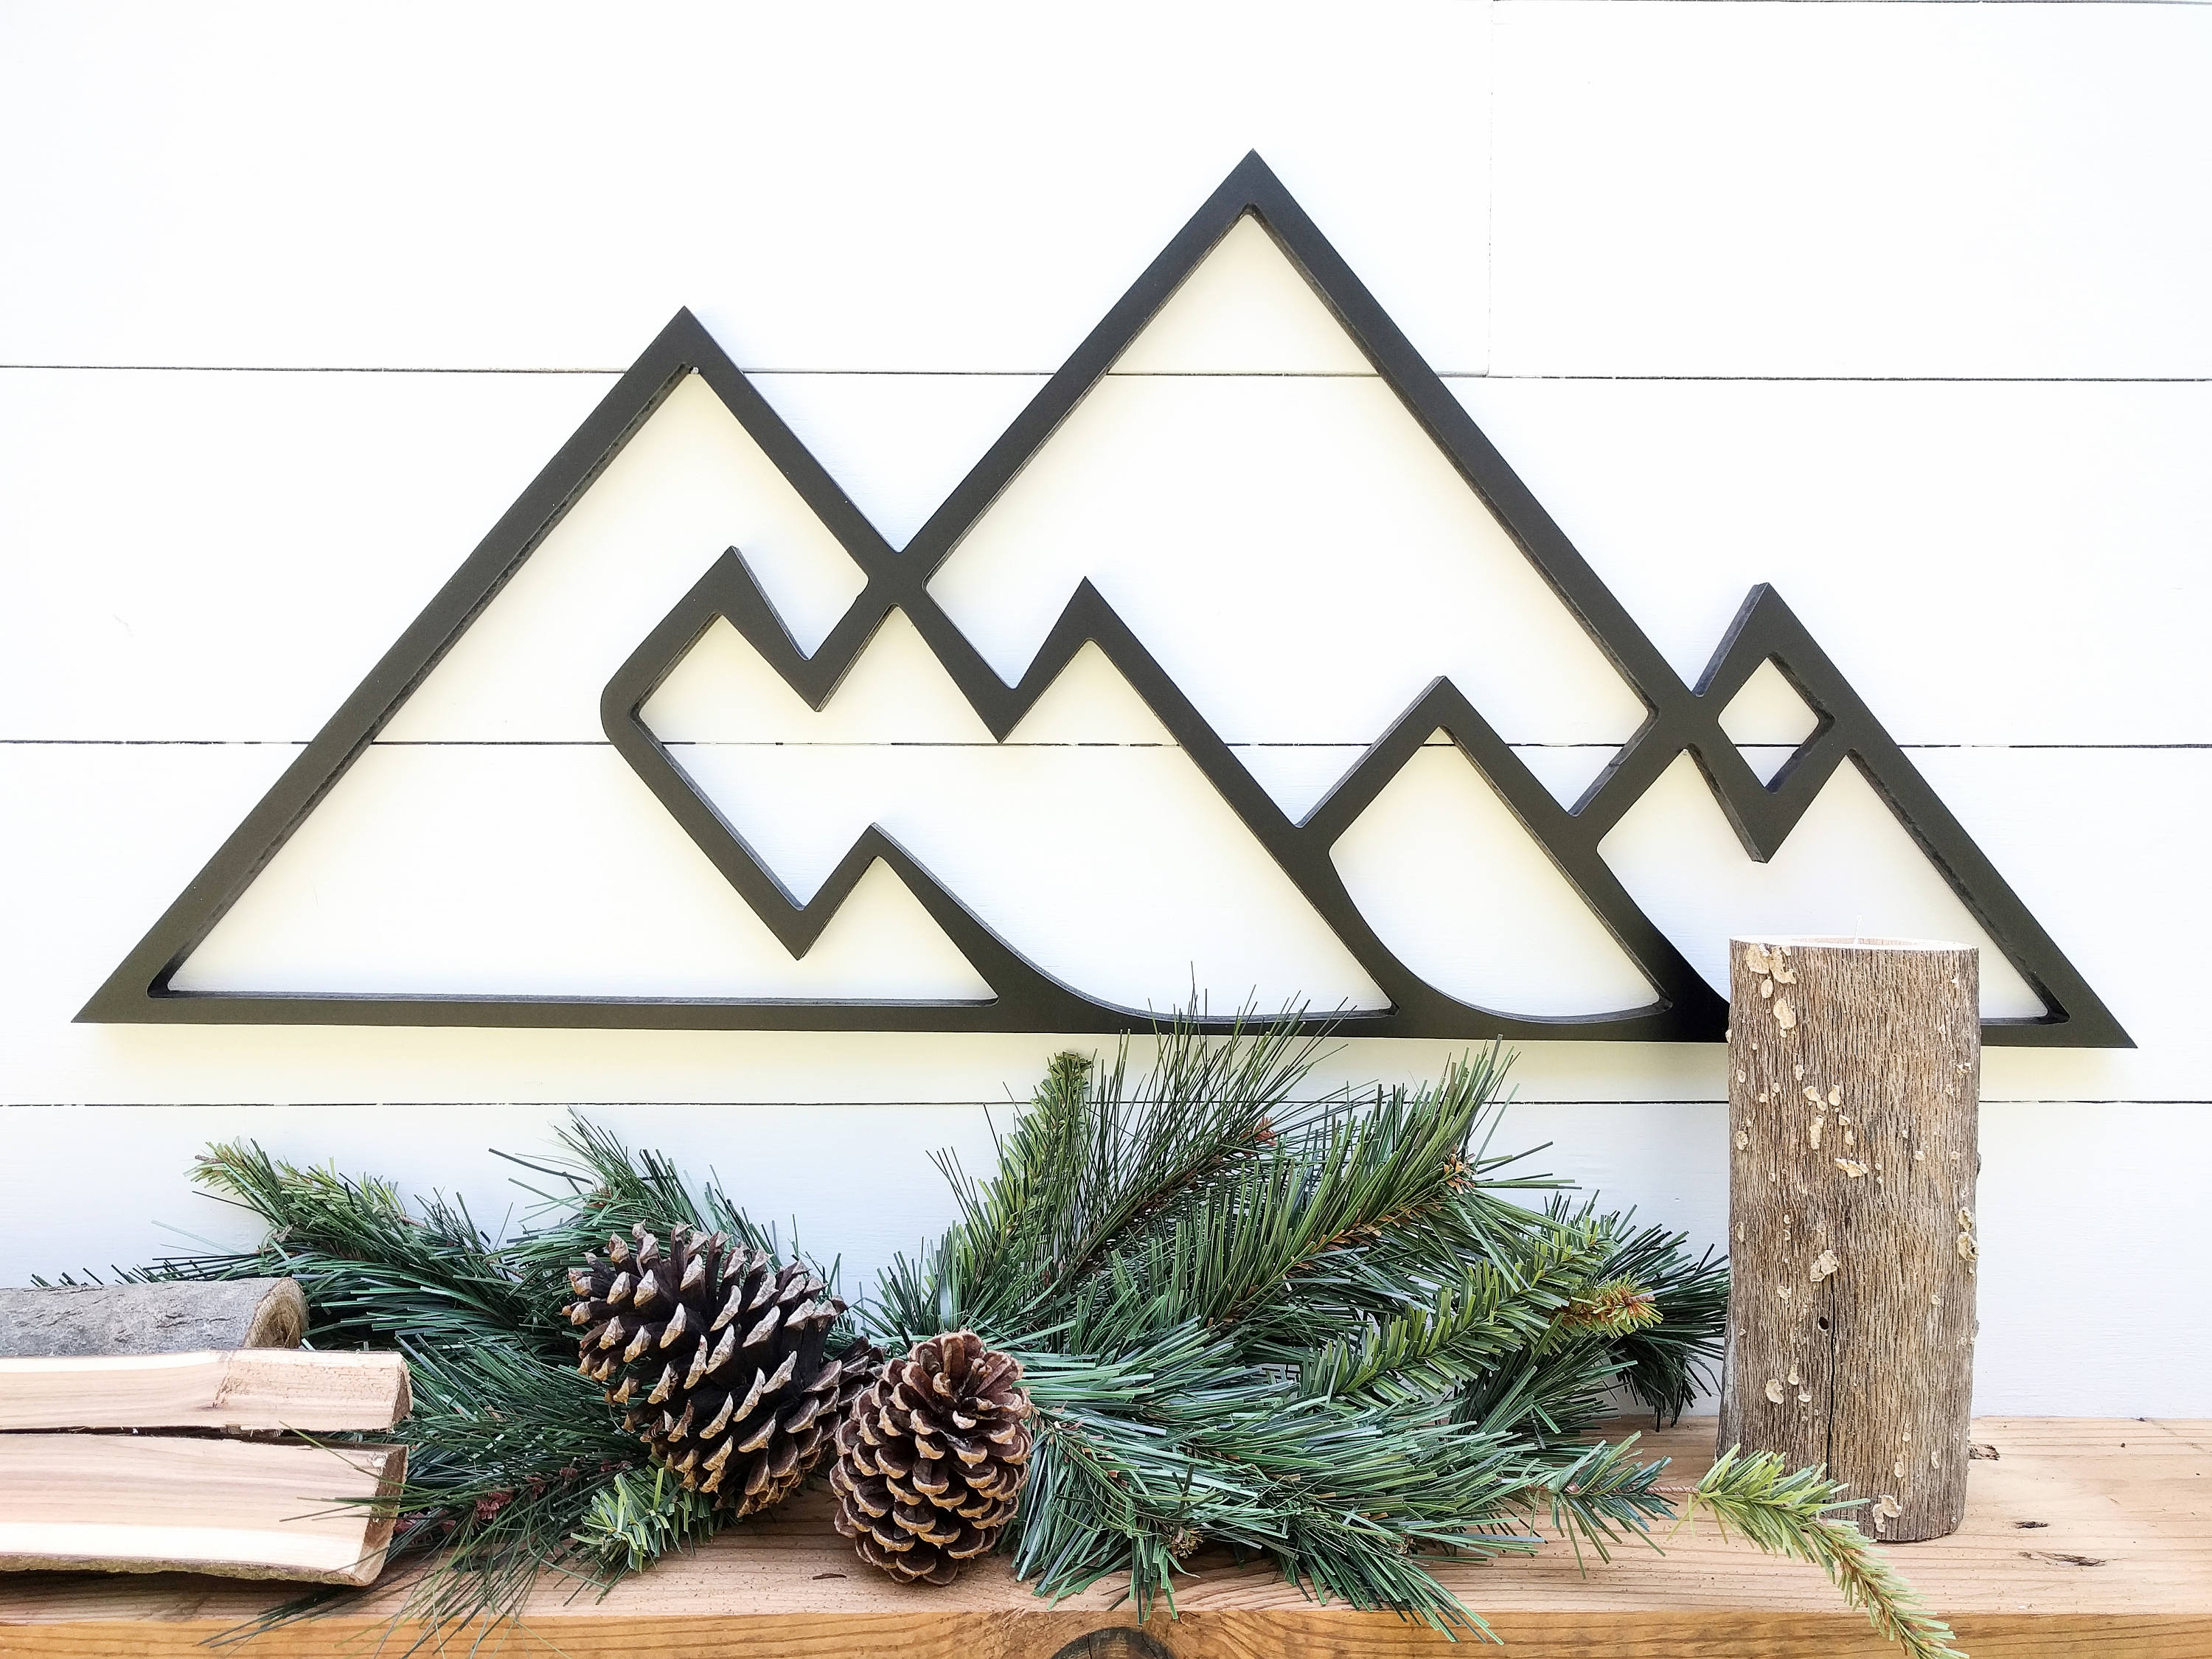 Geometric Mountains Wall Hanging | Geometric Woodland Theme Mountain Decor|  Mountain Range Wall Decor Available In 4 Sizes throughout Belle Circular Scroll Wall Decor (Image 9 of 30)